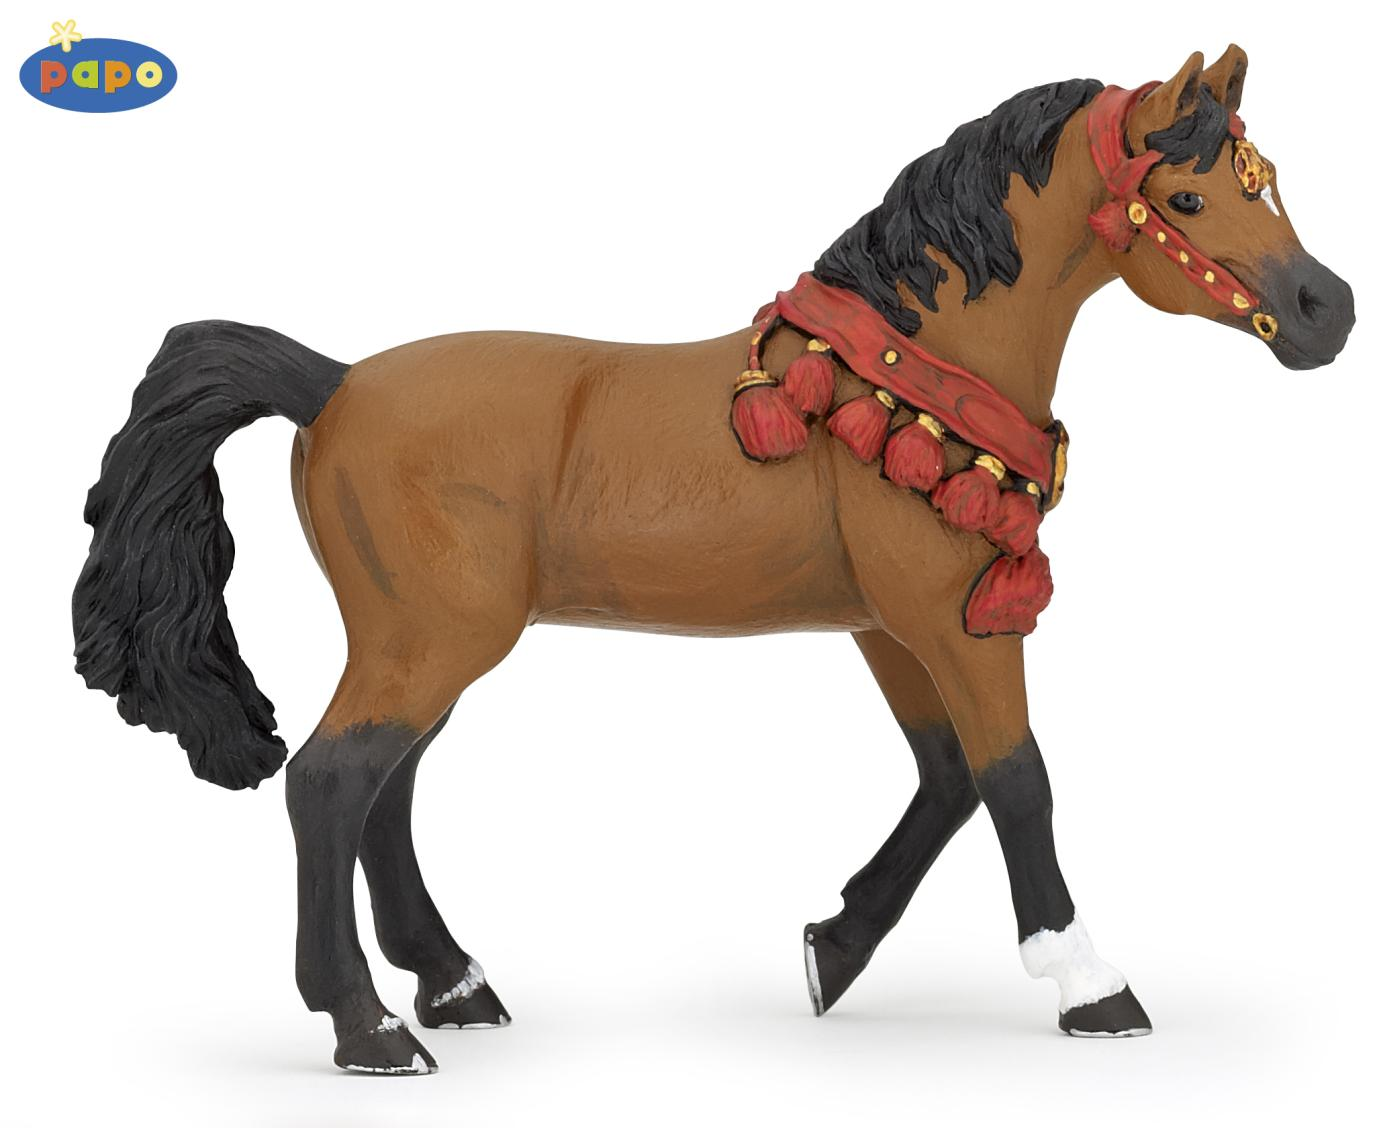 Toy Of Horses : Papo arabian horse in parade uniform spielzeug